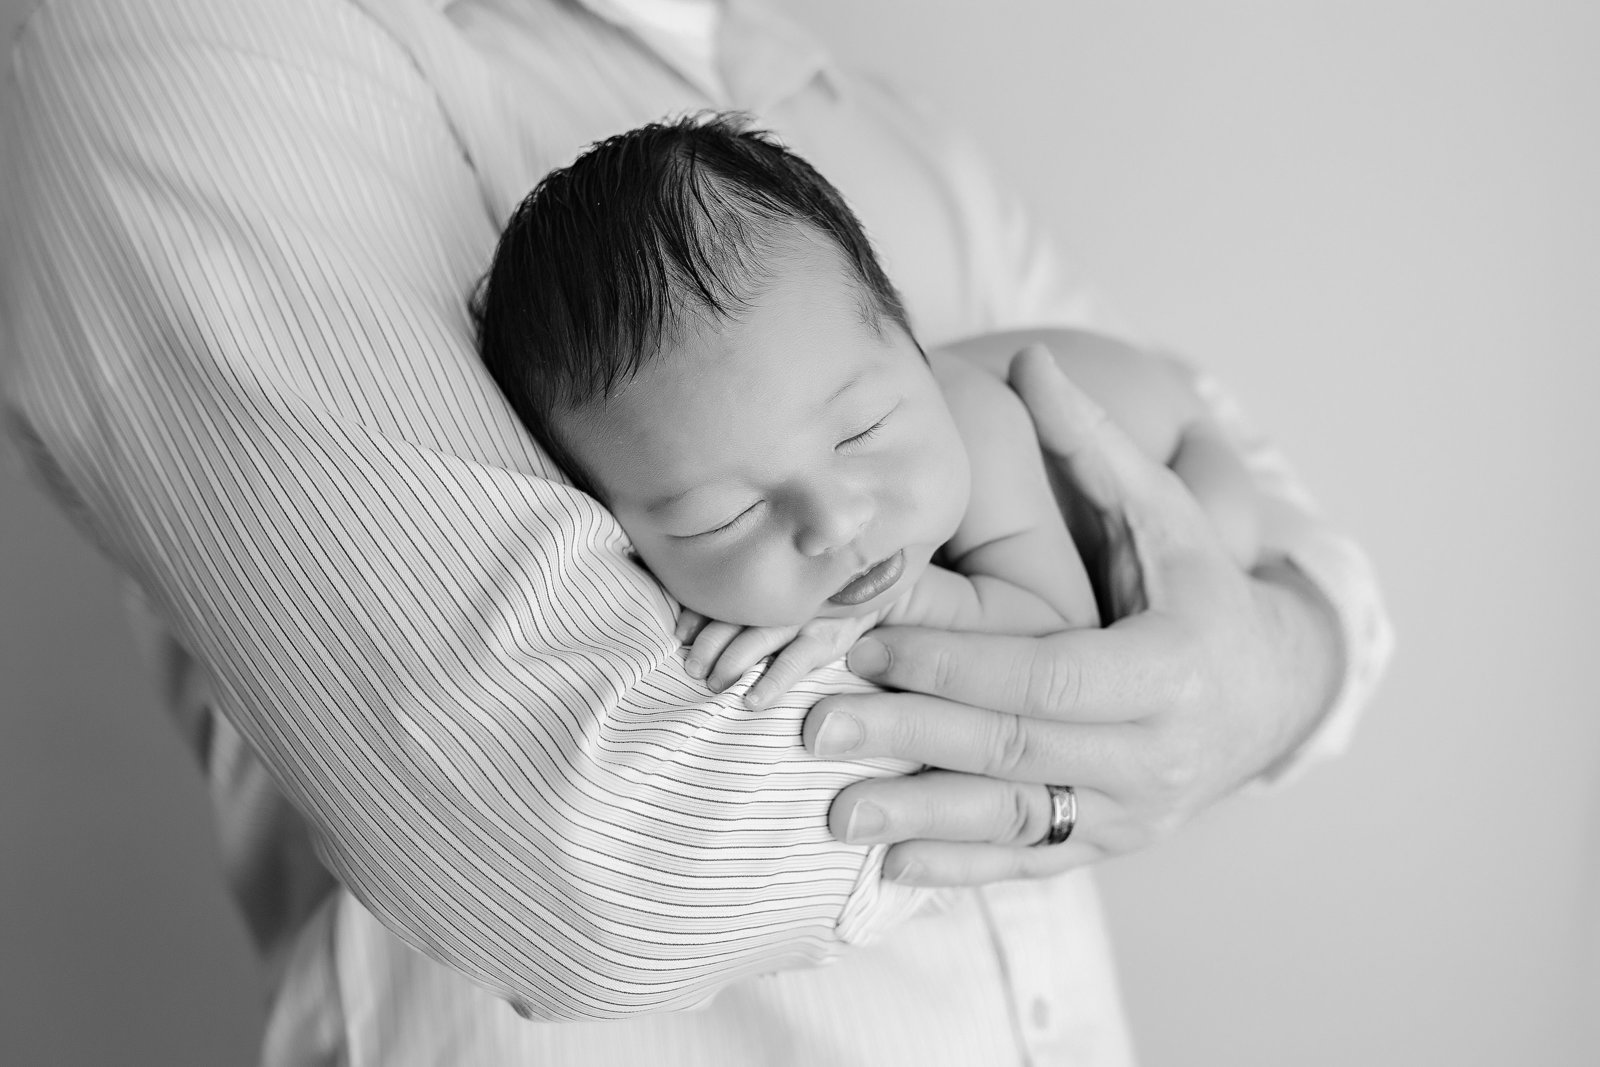 Asian baby in father's arms